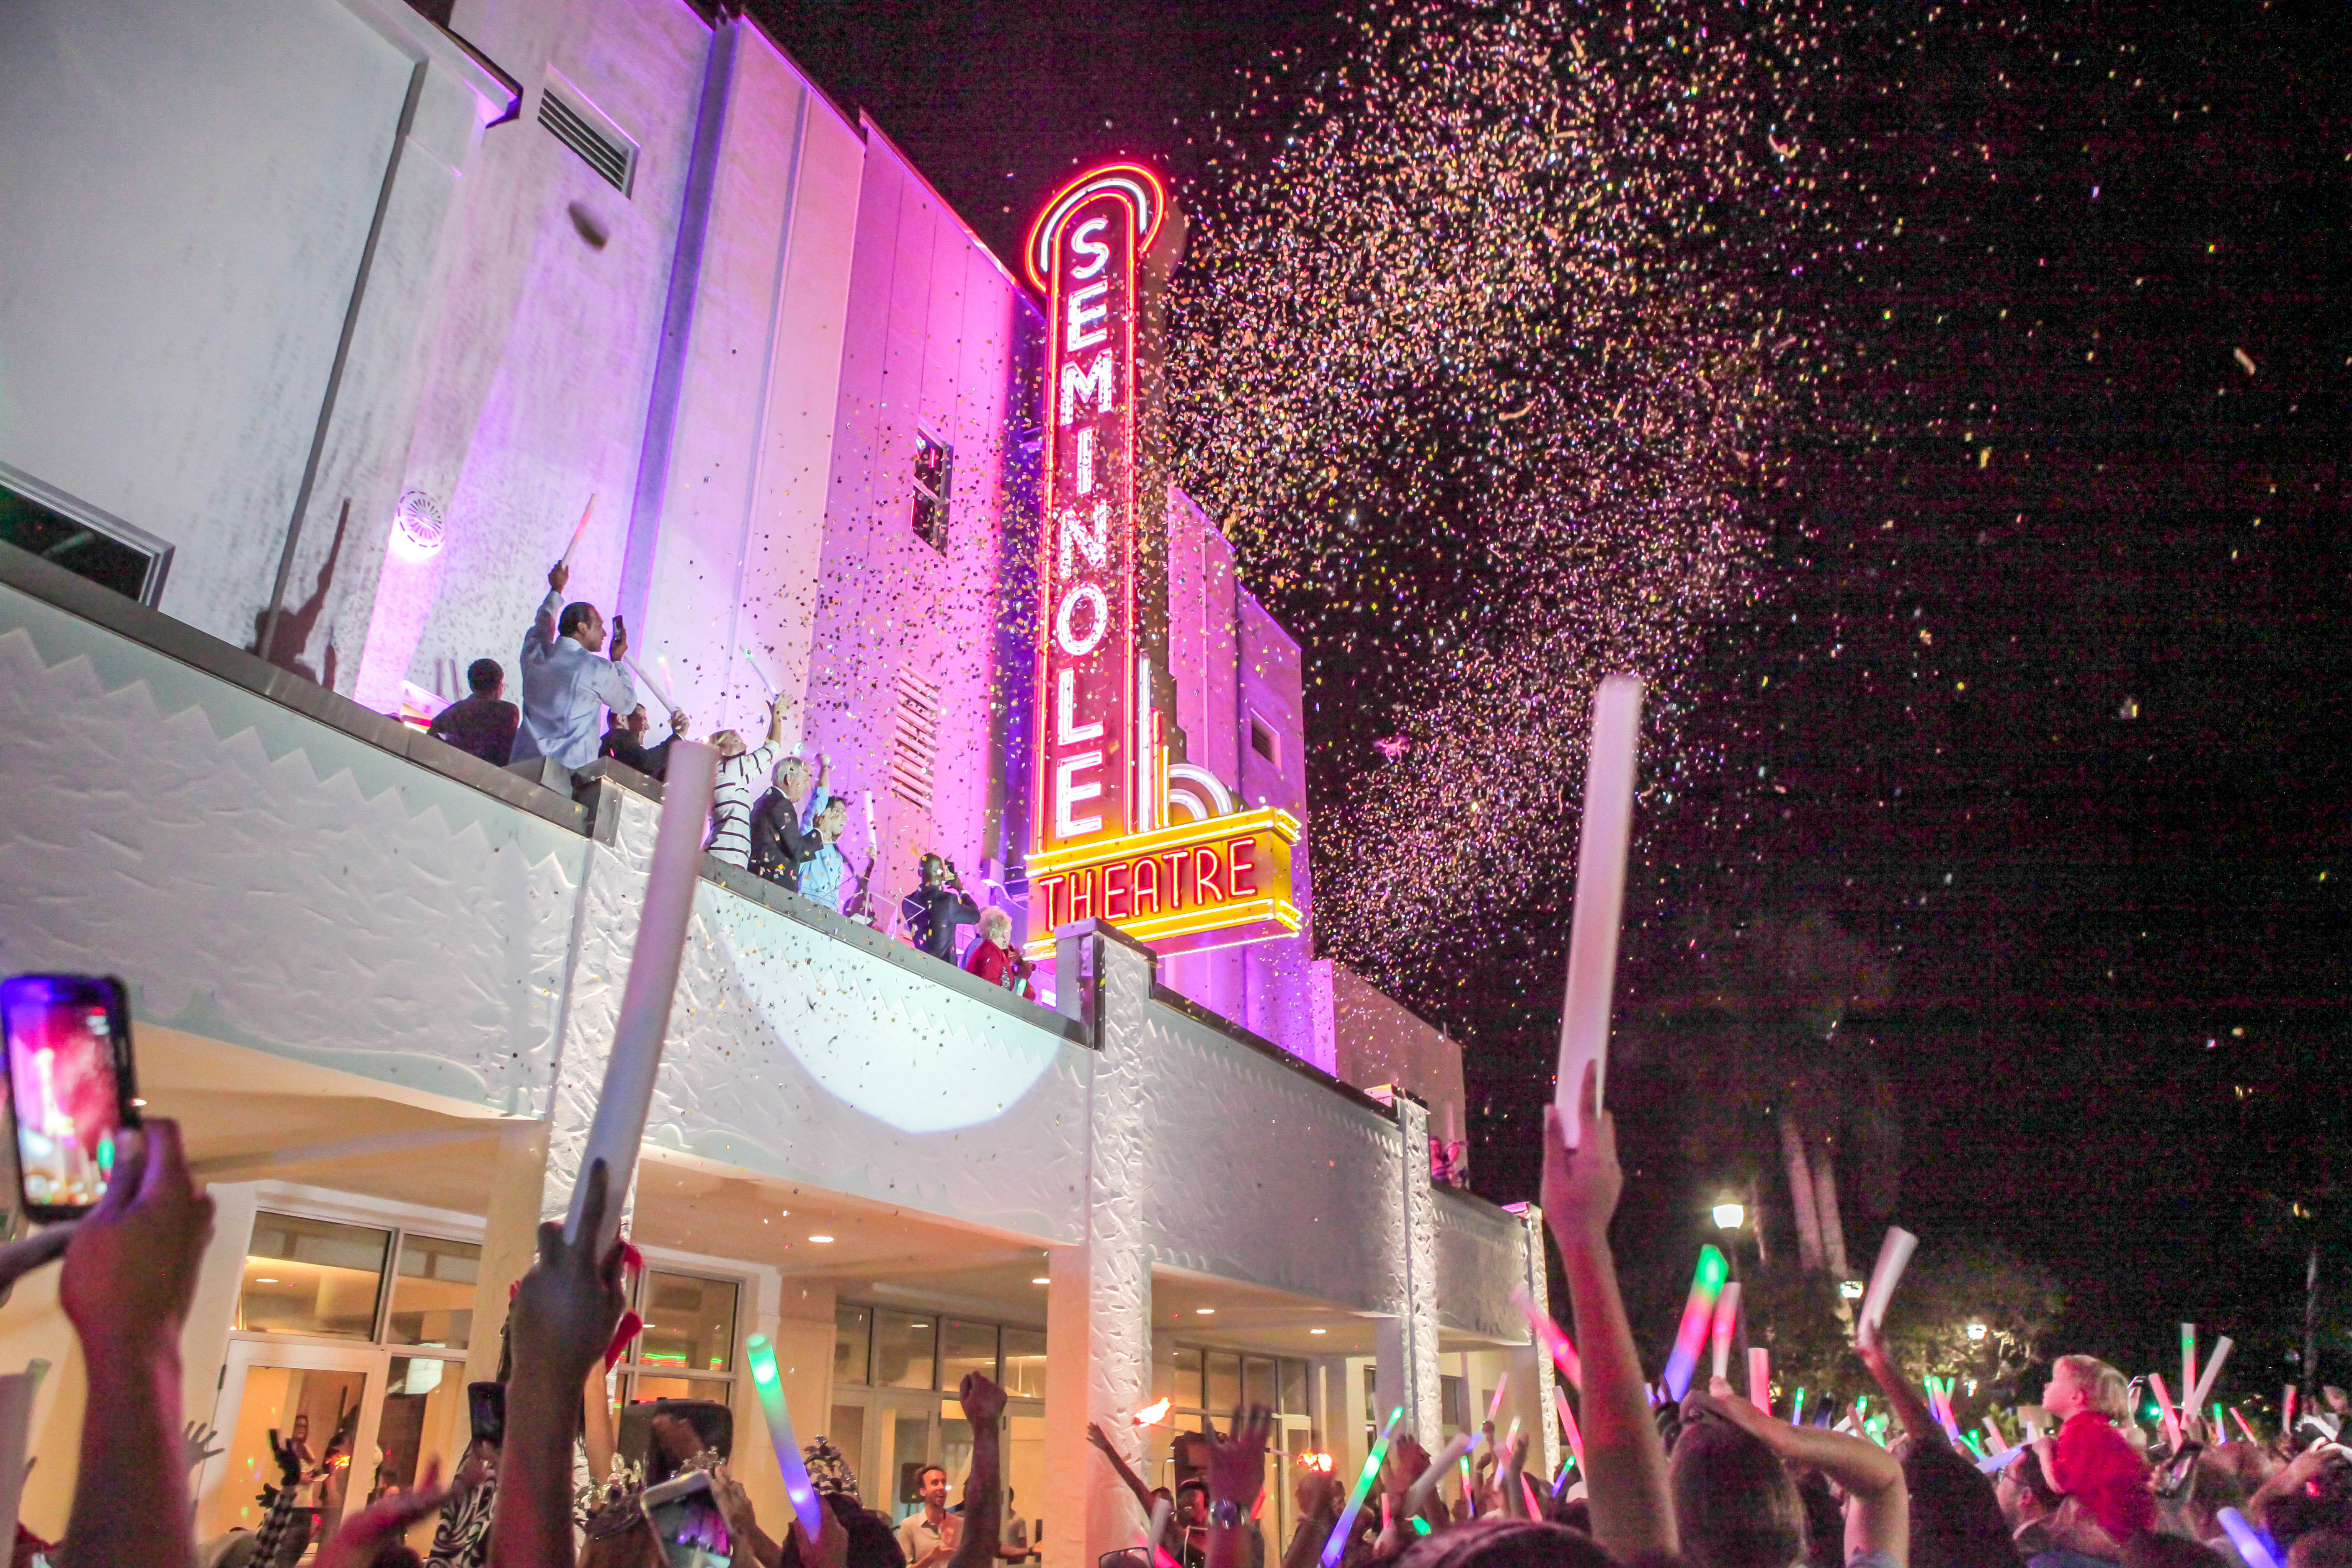 Seminole Theatre Completion Celebration